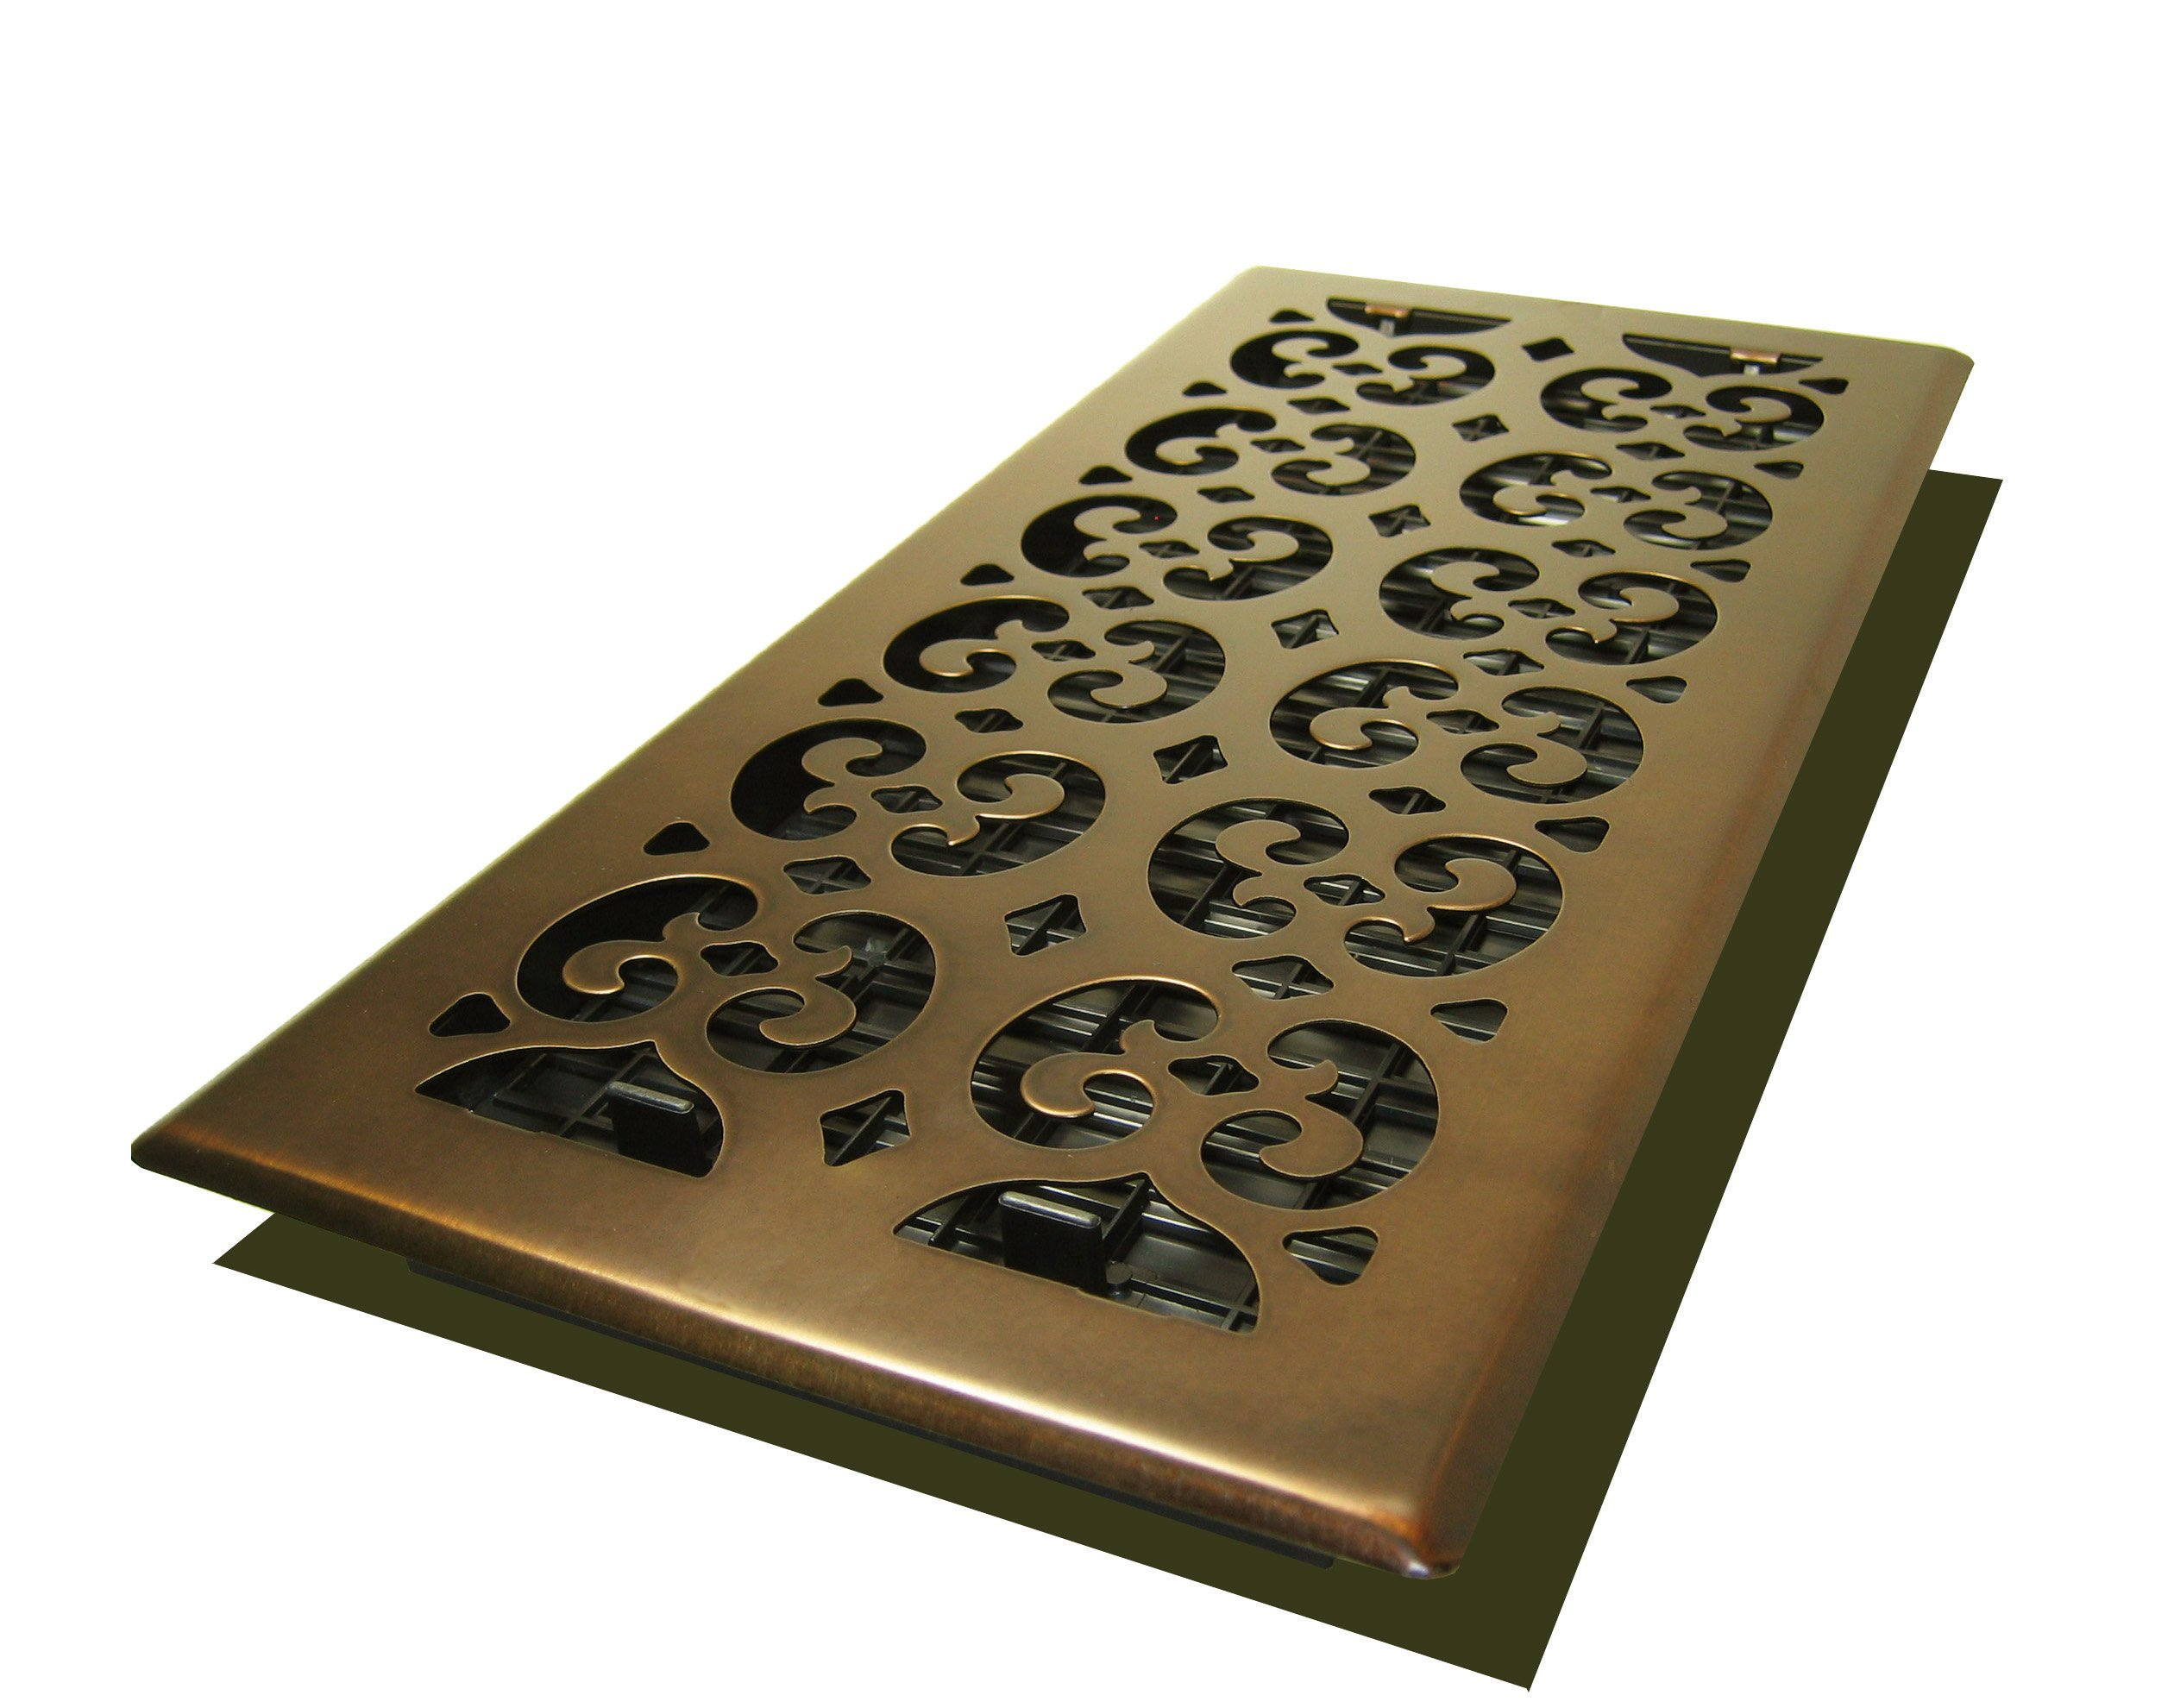 Decor Grates SPH614-RB Scroll Floor Register, 6-Inch by 14-Inch, Rubbed Bronze